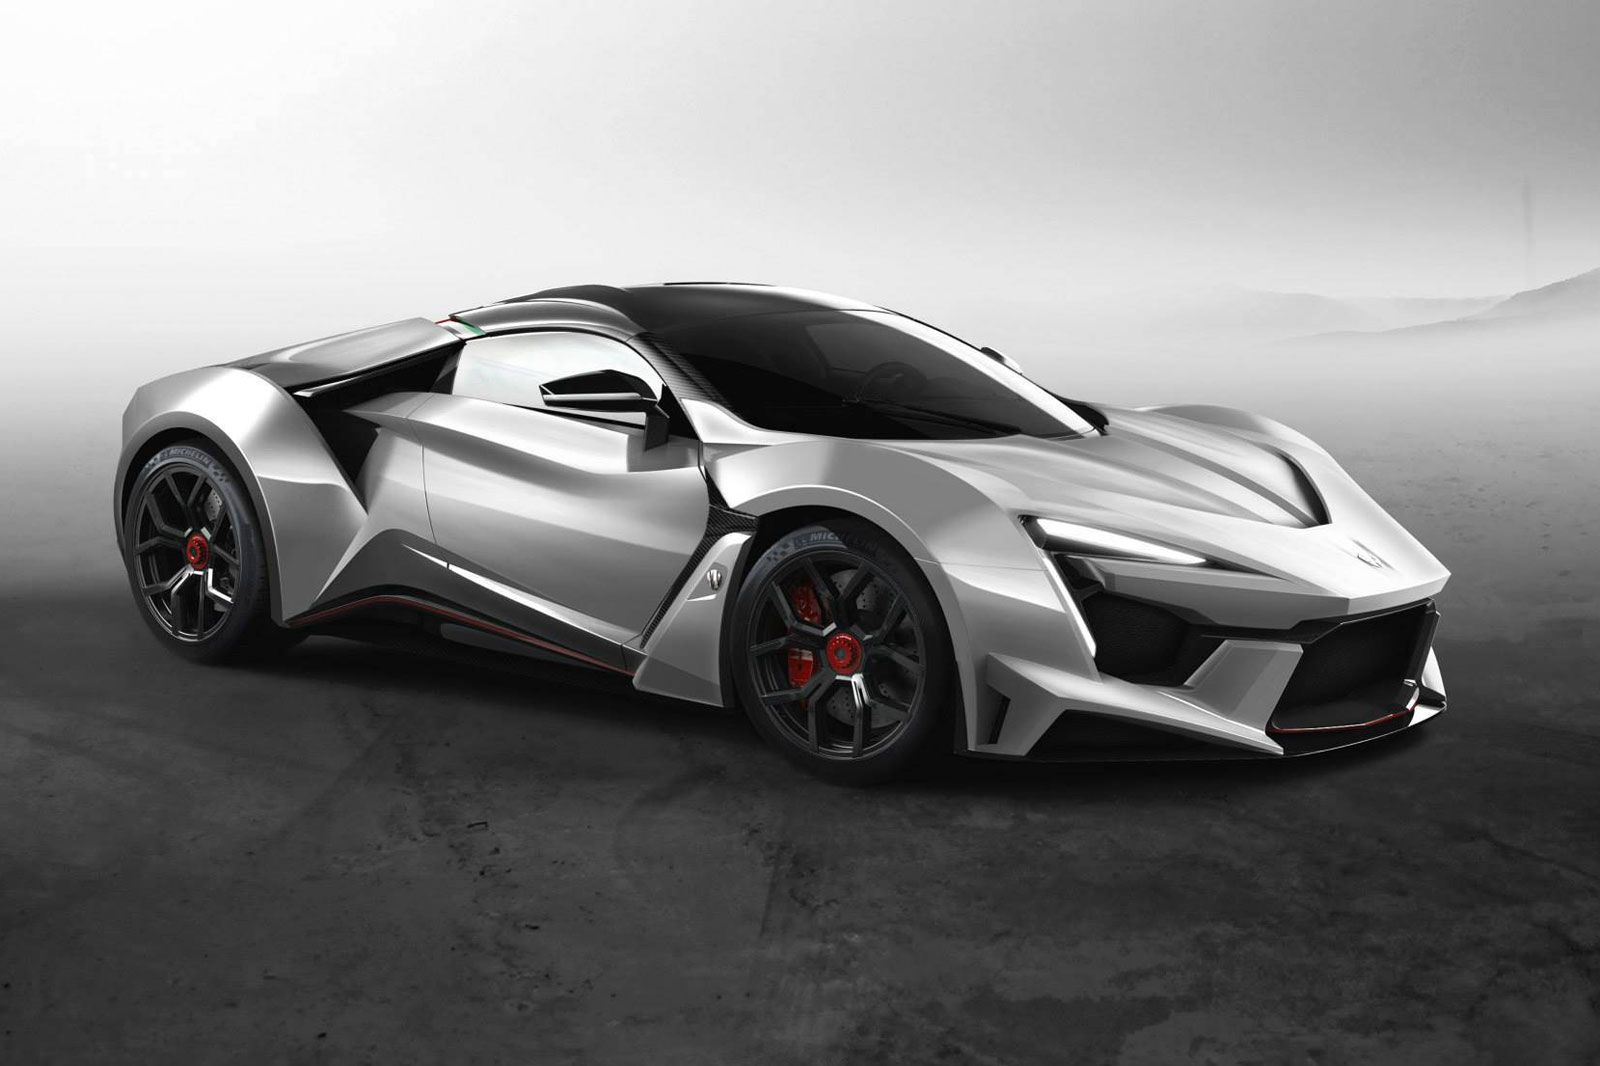 W Motors Fenyr Supersport Wallpapers Carro Supercarros Carros Lamborghini